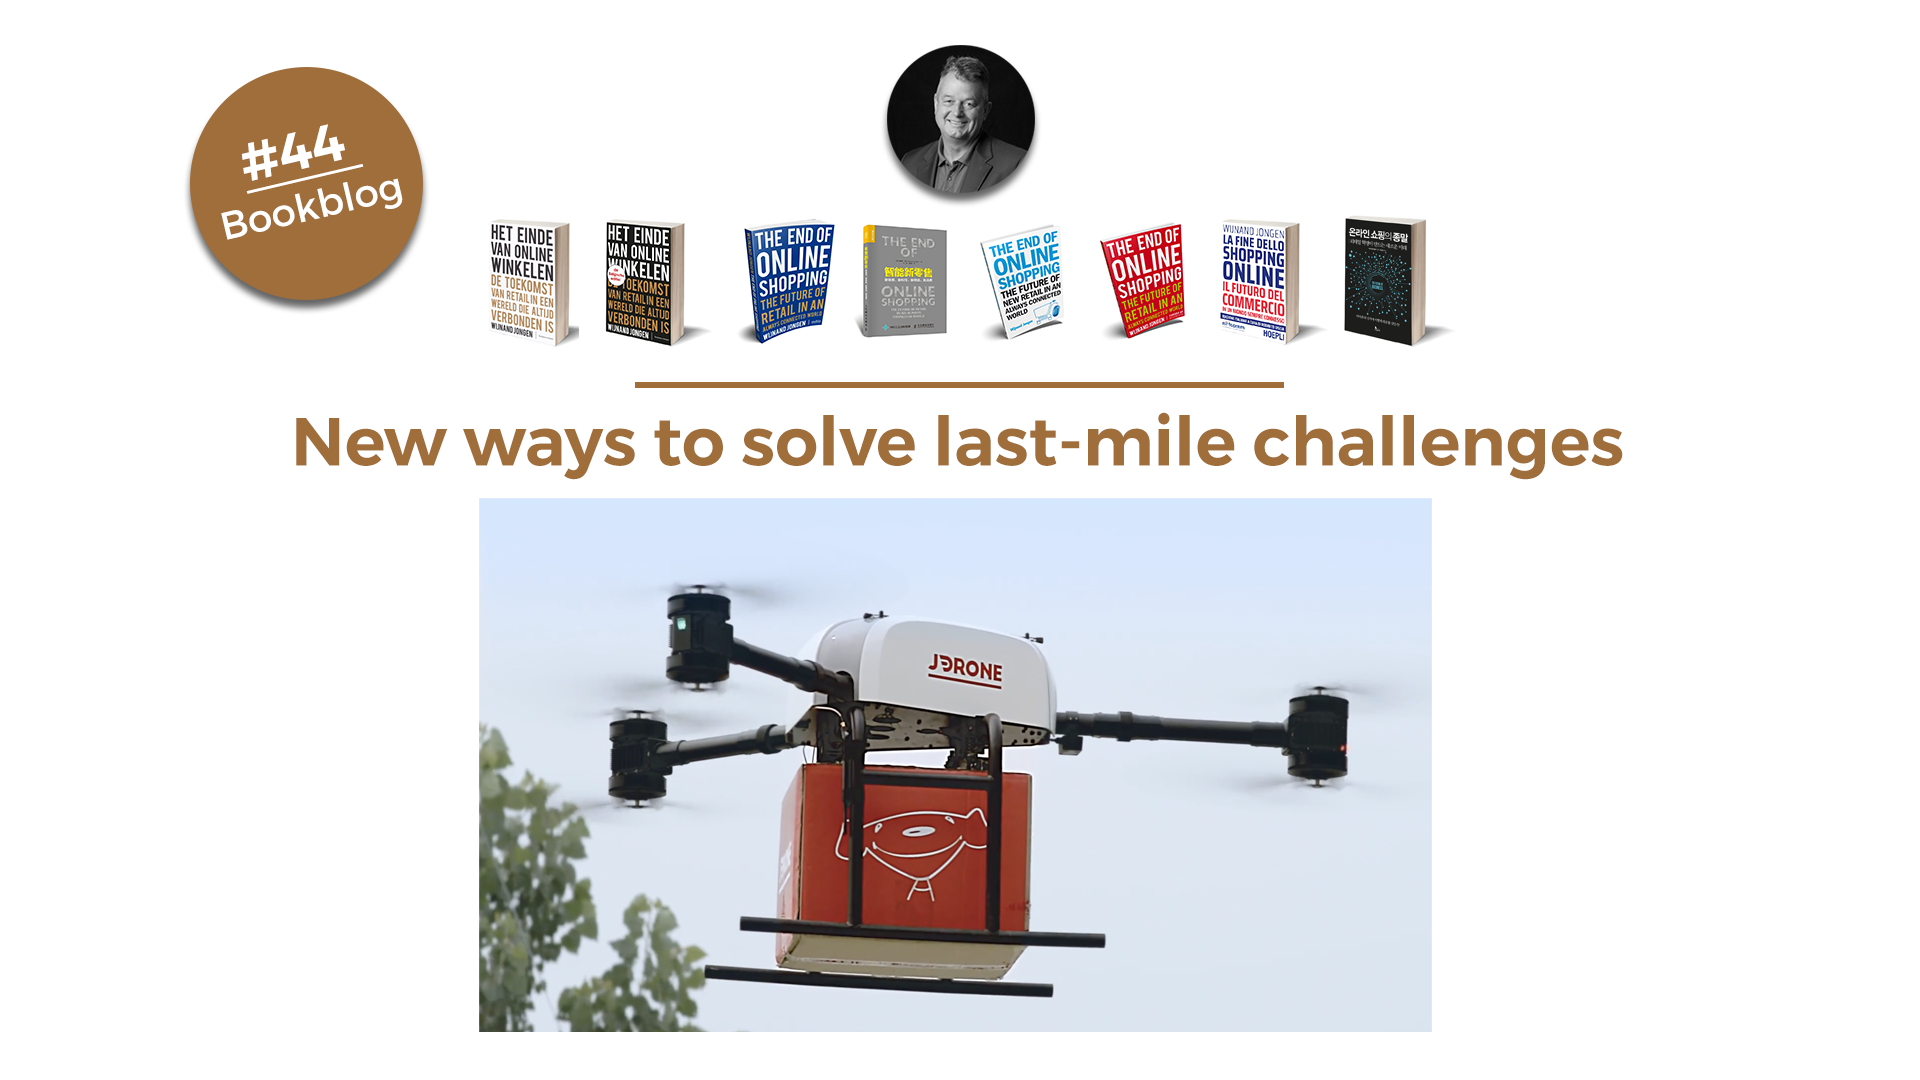 New ways to solve last-mile challenges